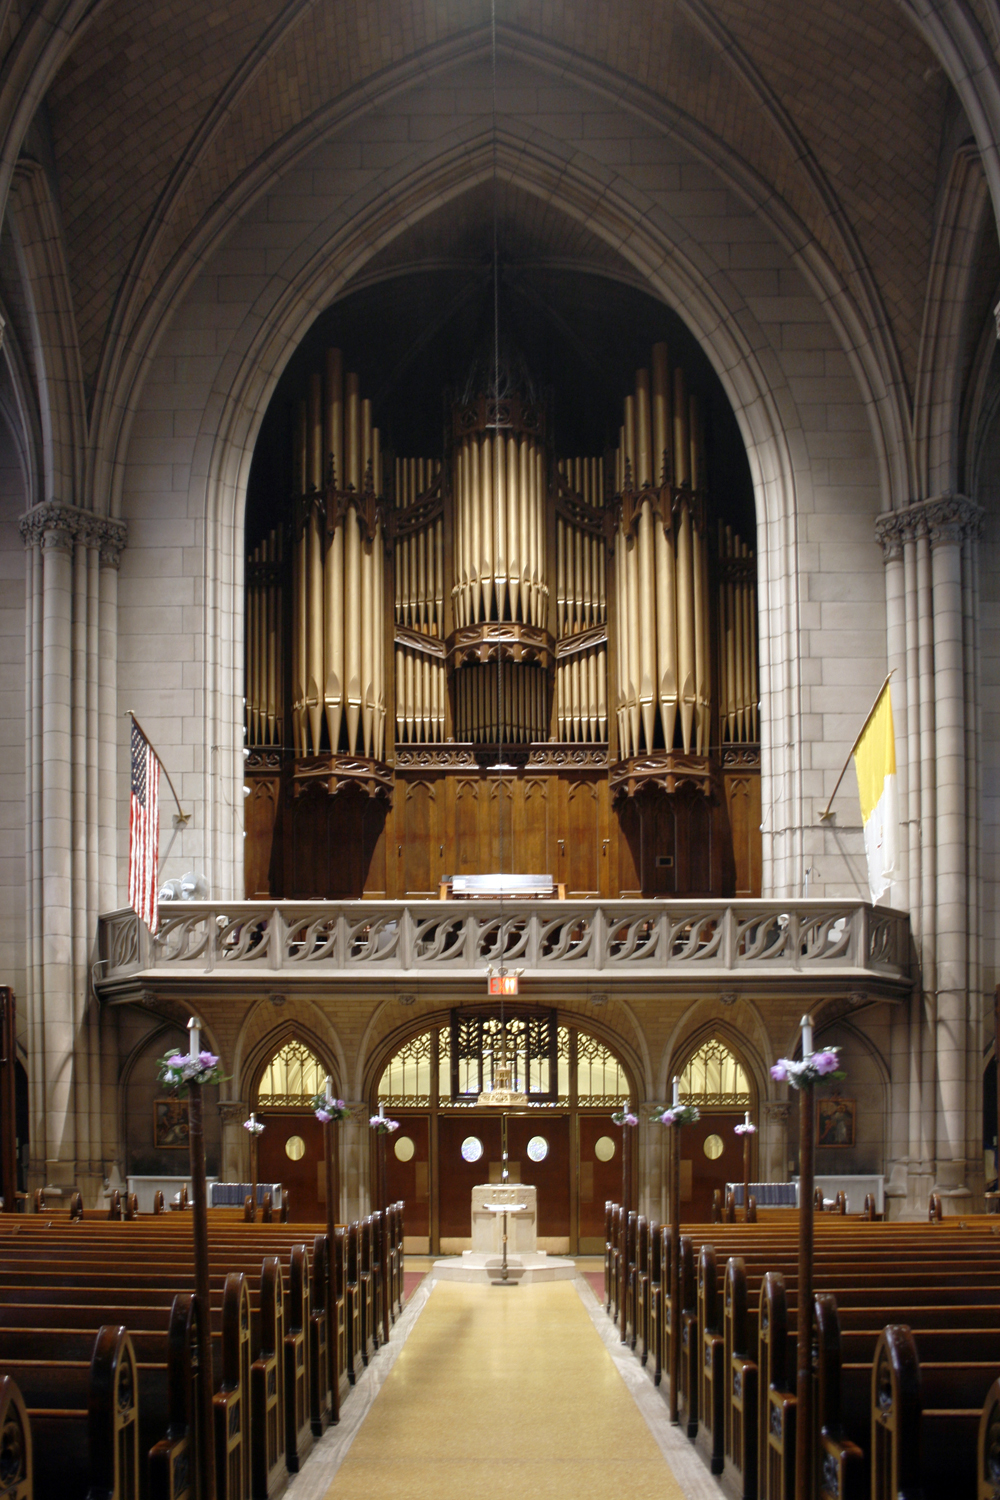 Wirsching Organ (1913) in Queen of All Saints Catholic Church - Brooklyn, N.Y. (photo: Steven E. Lawson)